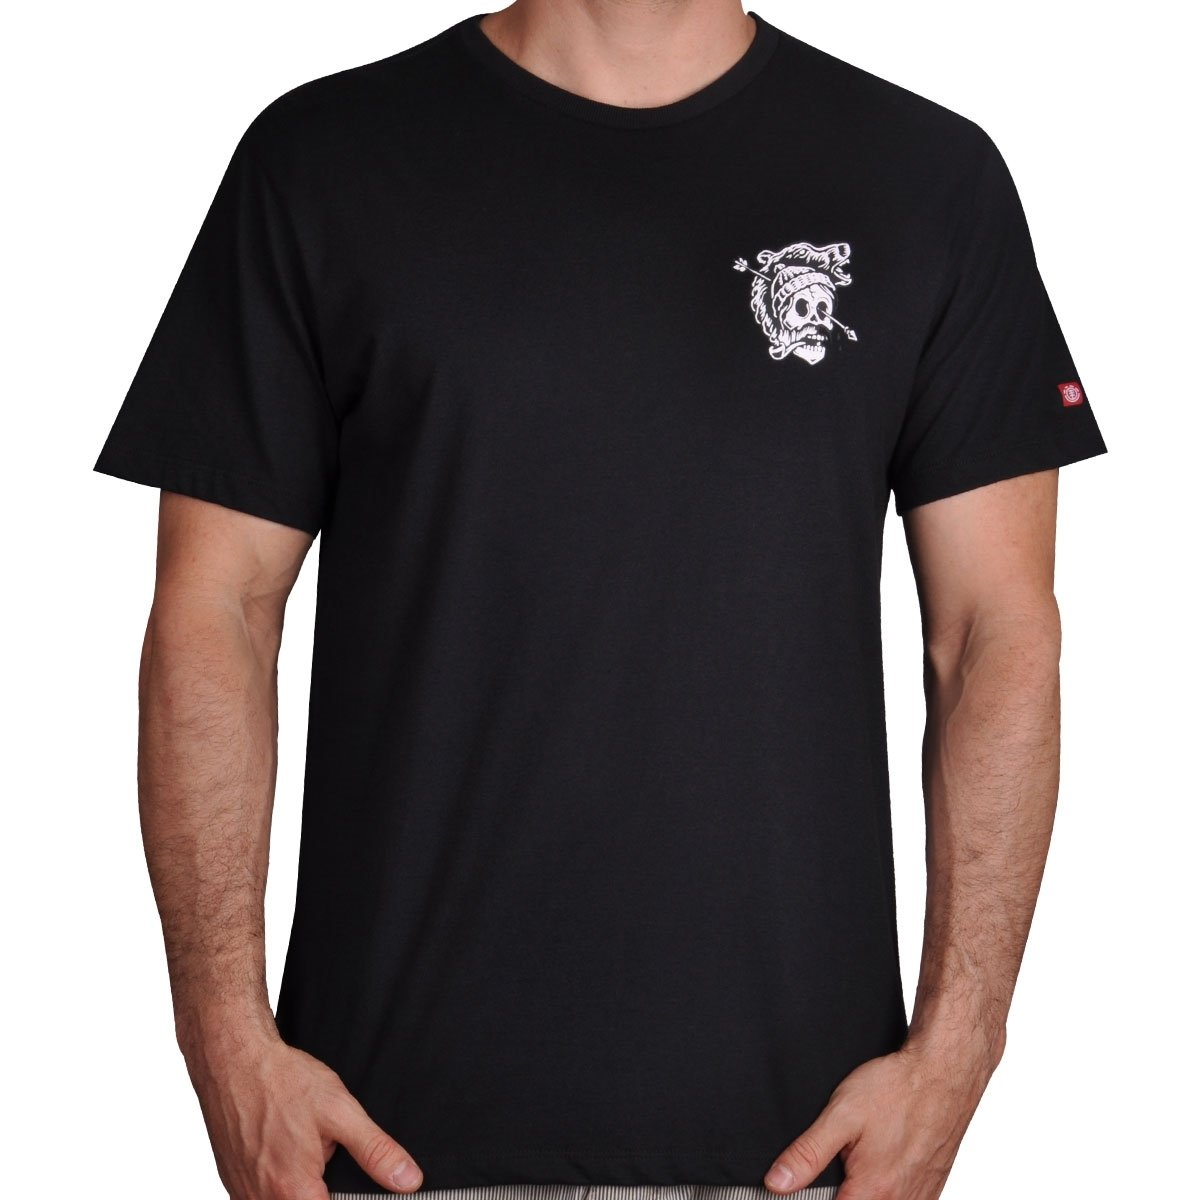 Camiseta Camiseta Preto Element By Gones Element By gwrgqpx